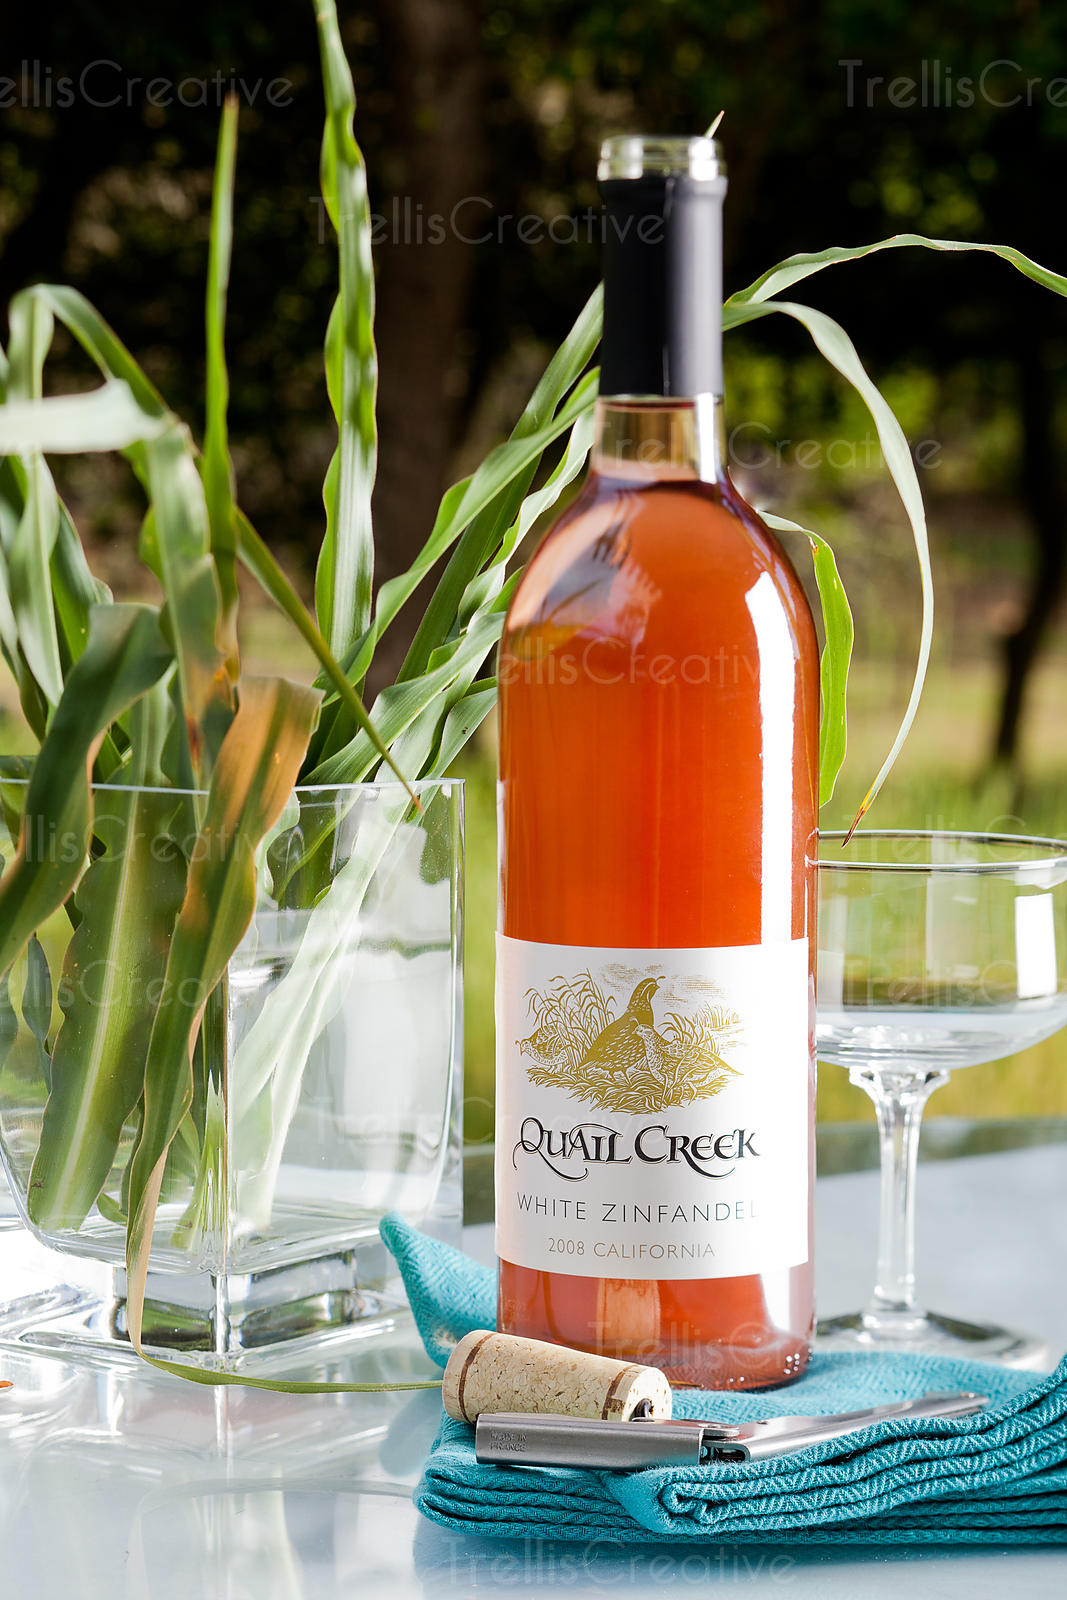 An opened bottle of rose wine on an outdoor patio table